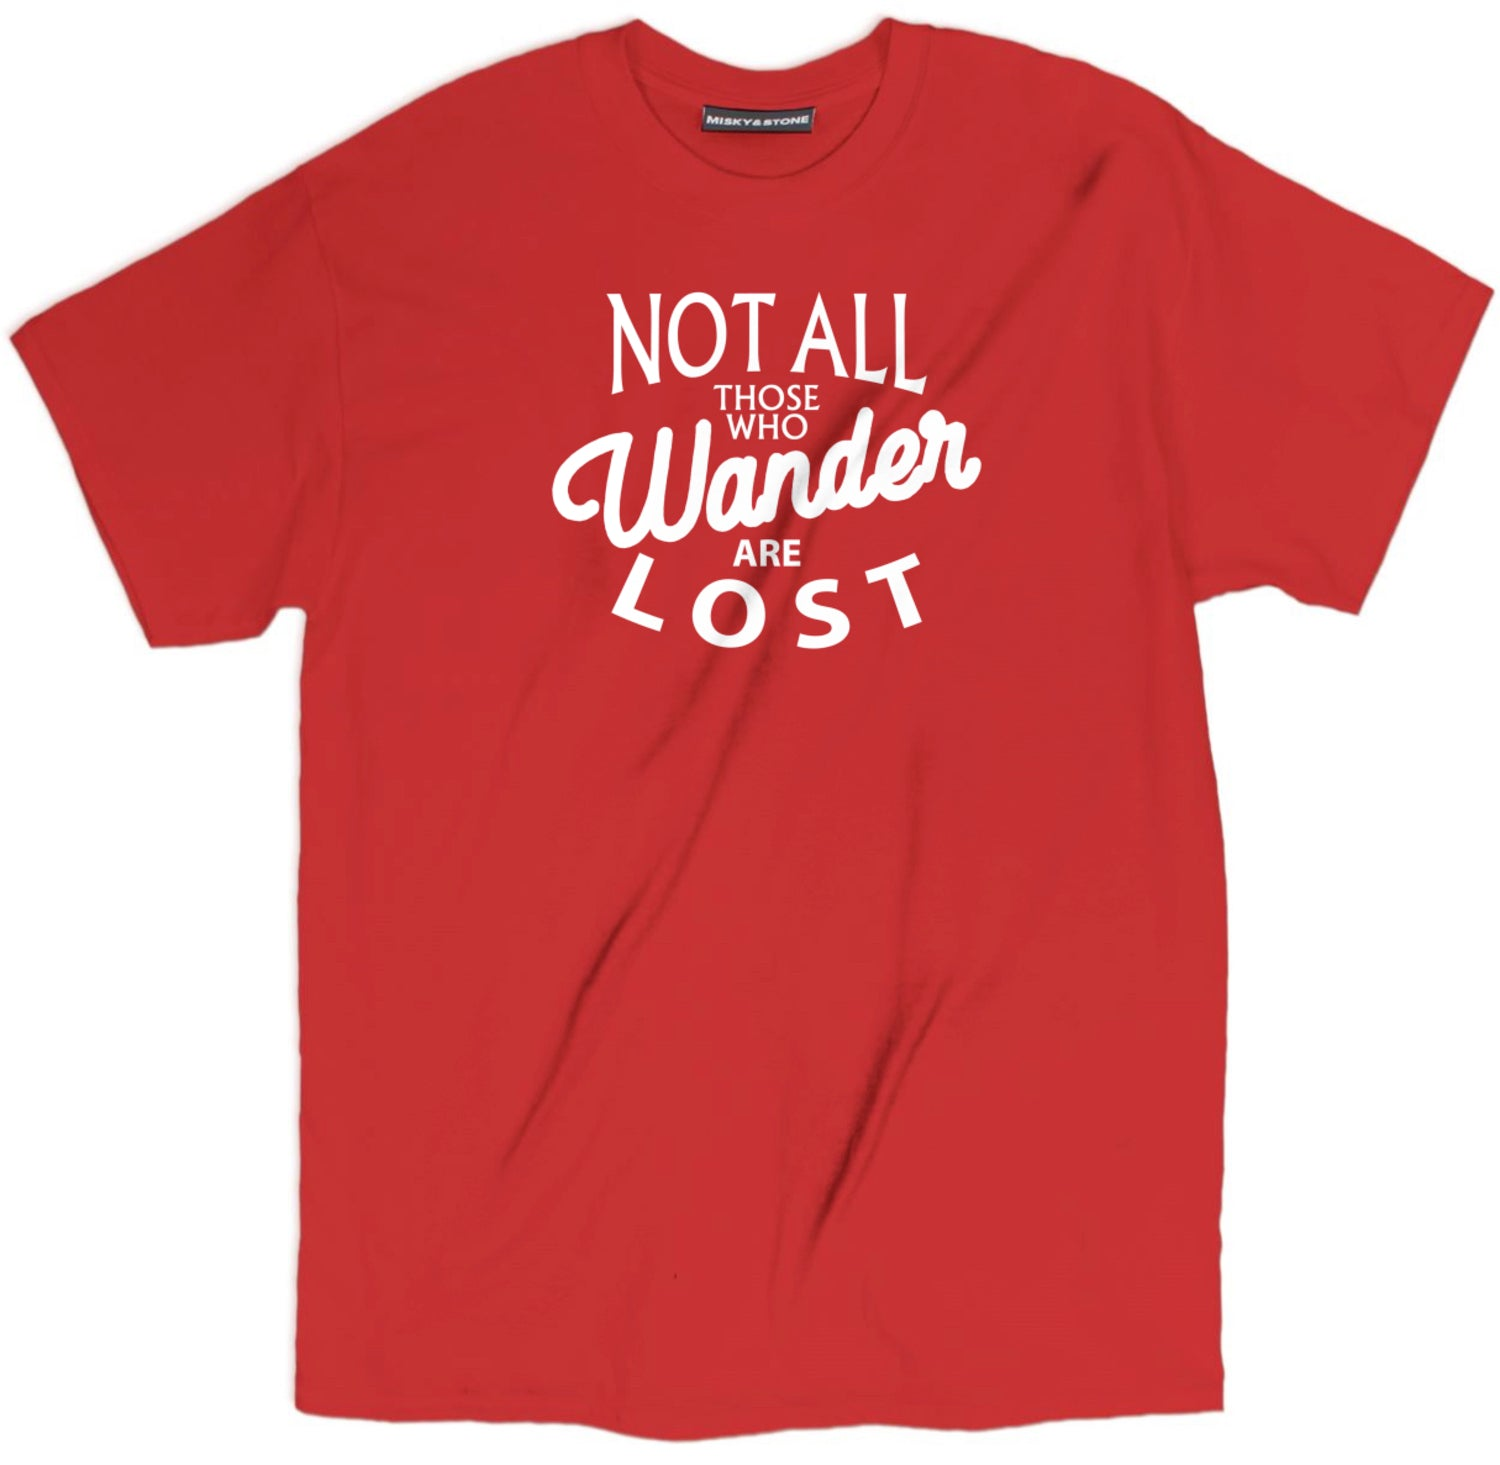 not all those who wander are lost shirt, wander t shirt, inspirational t shirt, spiritual t shirts, spiritual shirts, spiritual quote t shirts,